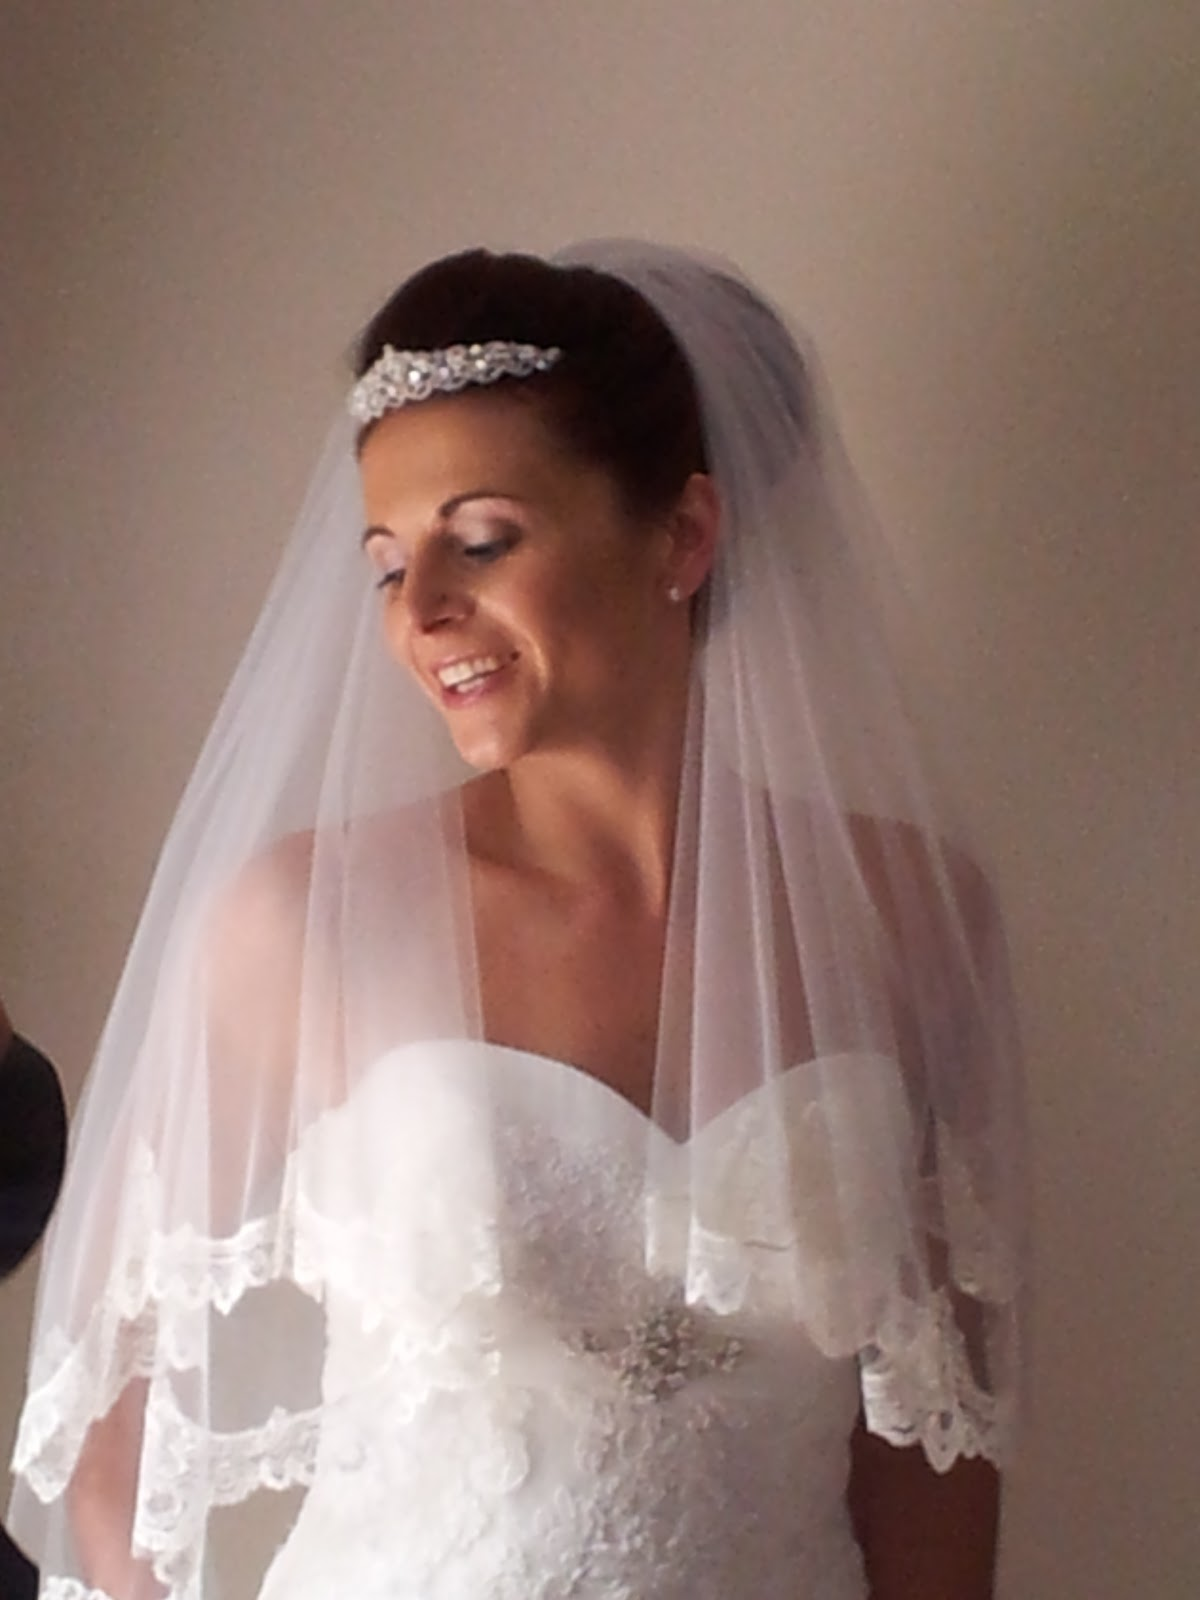 Bridal tiaras and veils - Low Wedding Bun With Wedding Veil And Tiara